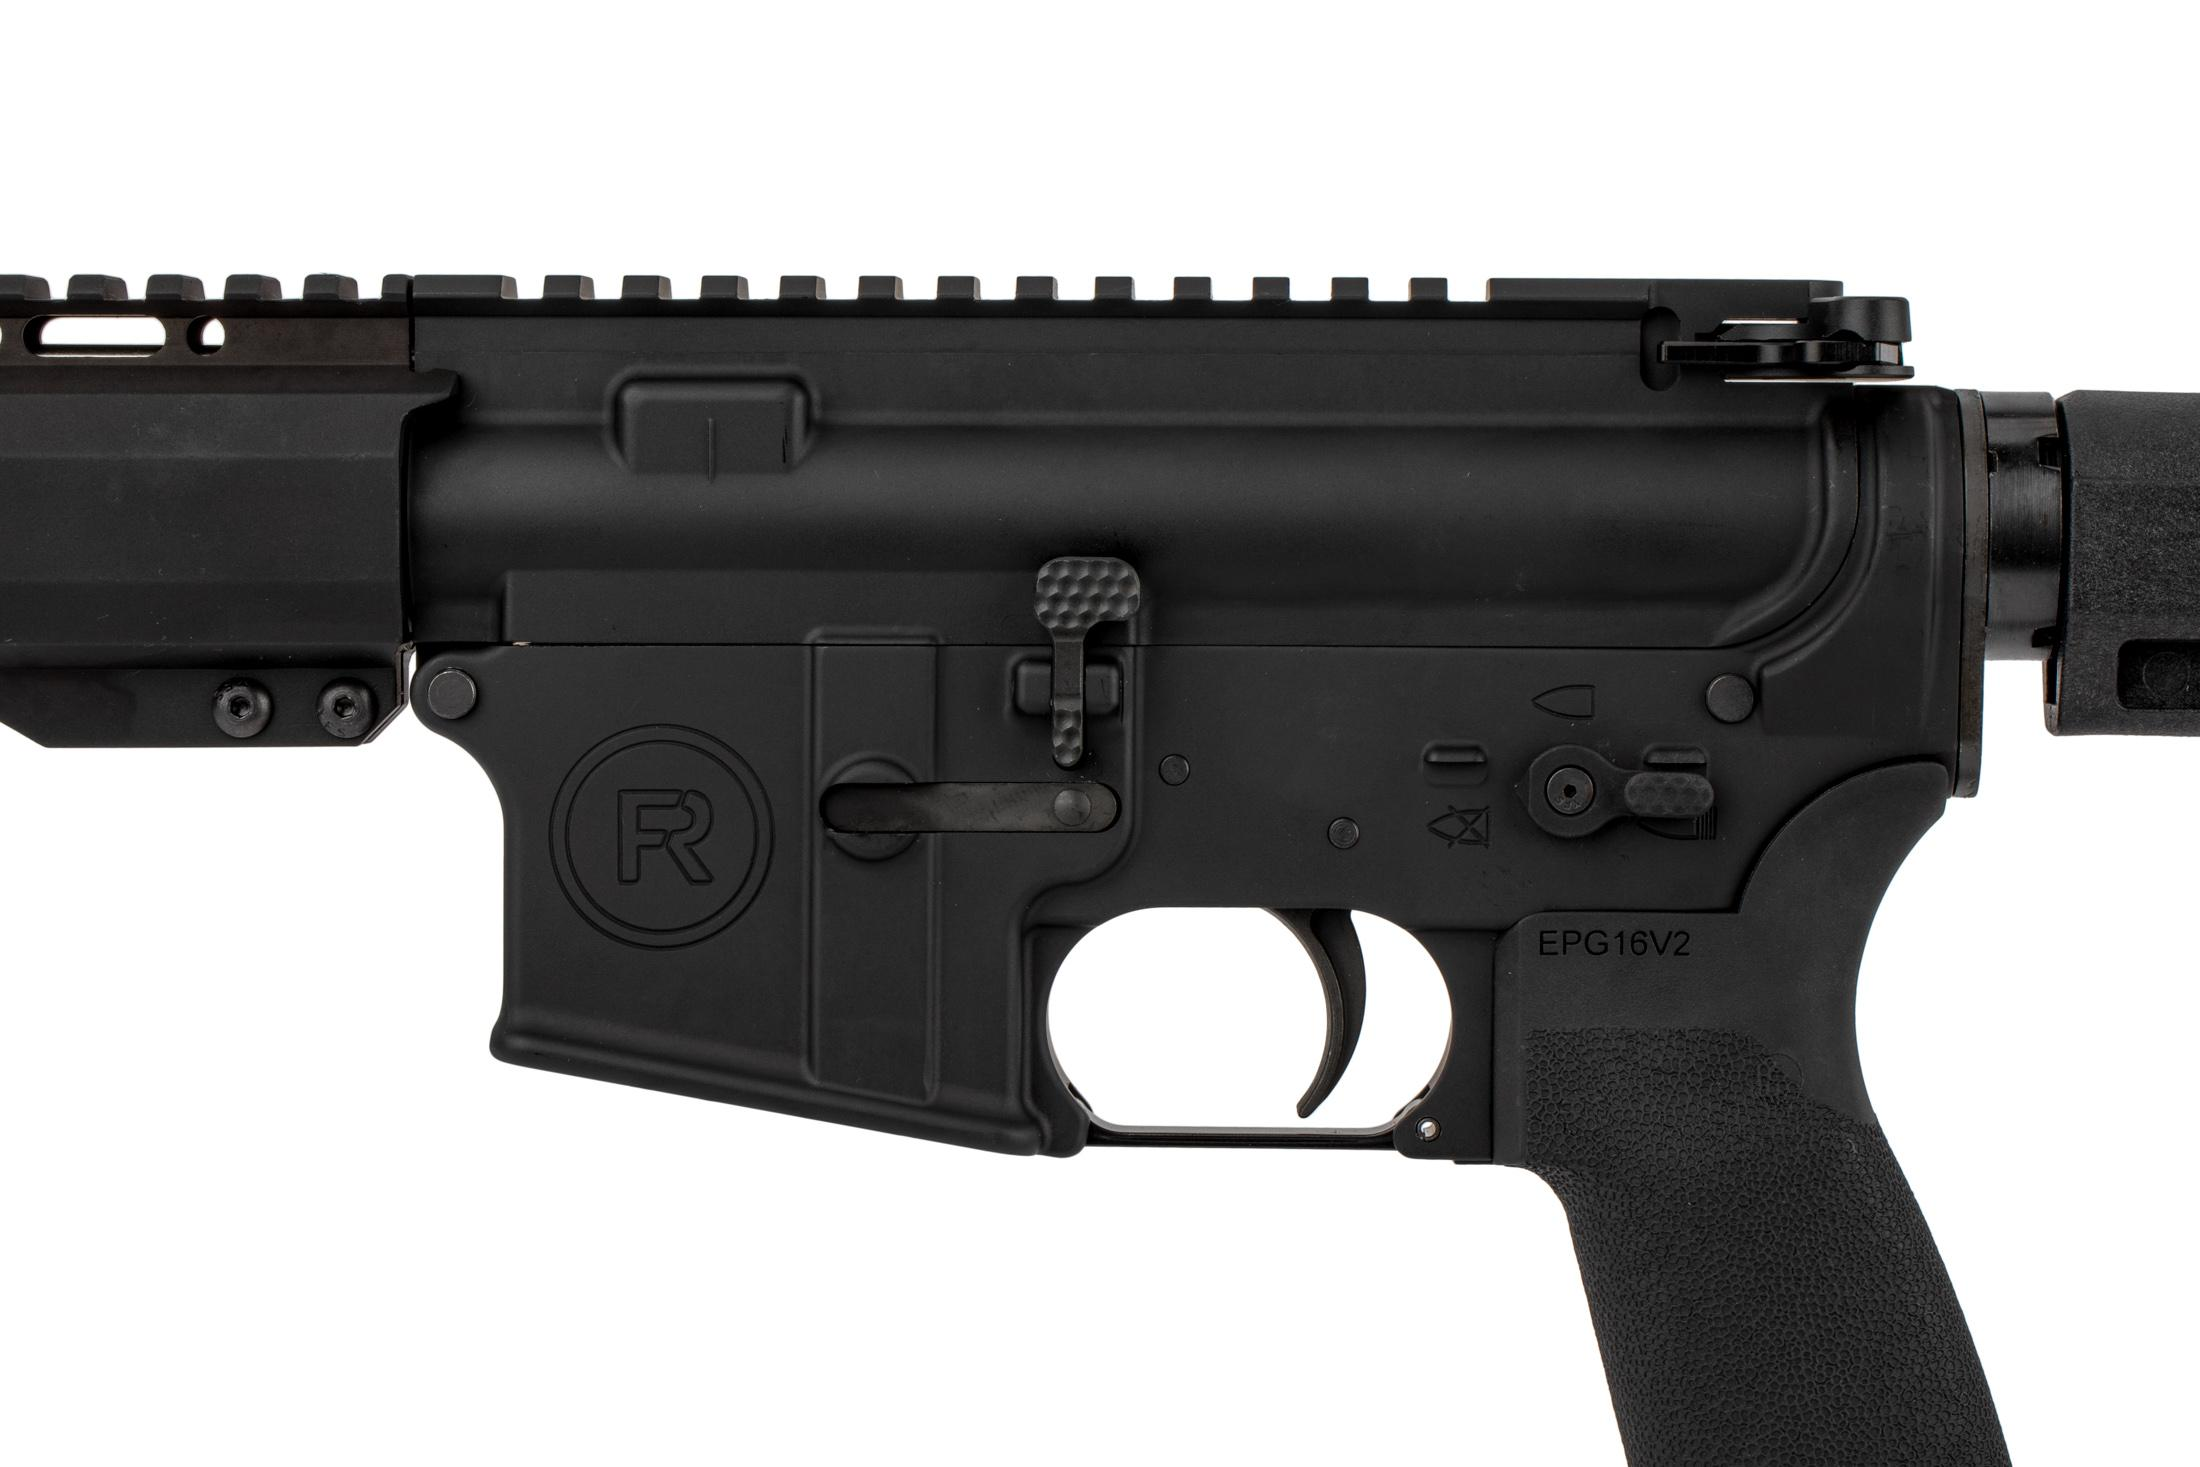 The Radical Firearms .300 BLK Pistol features an extended bolt release